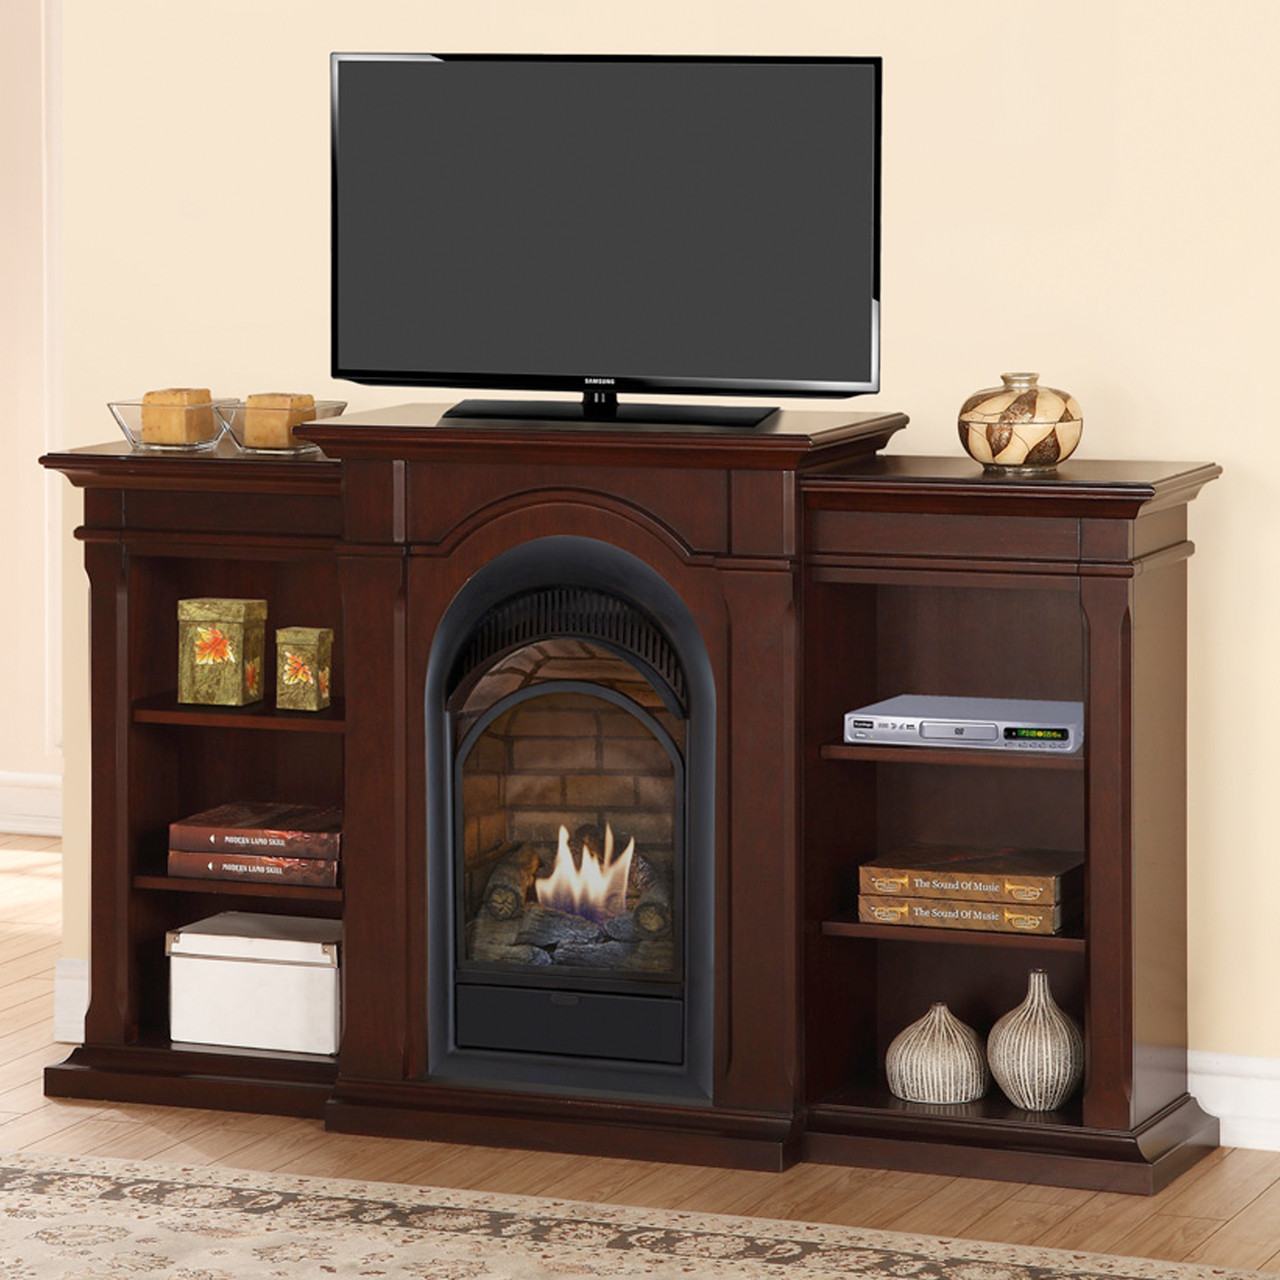 Awe Inspiring Duluth Forge Dual Fuel Ventless Fireplace With Bookshelves 15 000 Btu T Stat Chocolate Finish Download Free Architecture Designs Boapuretrmadebymaigaardcom